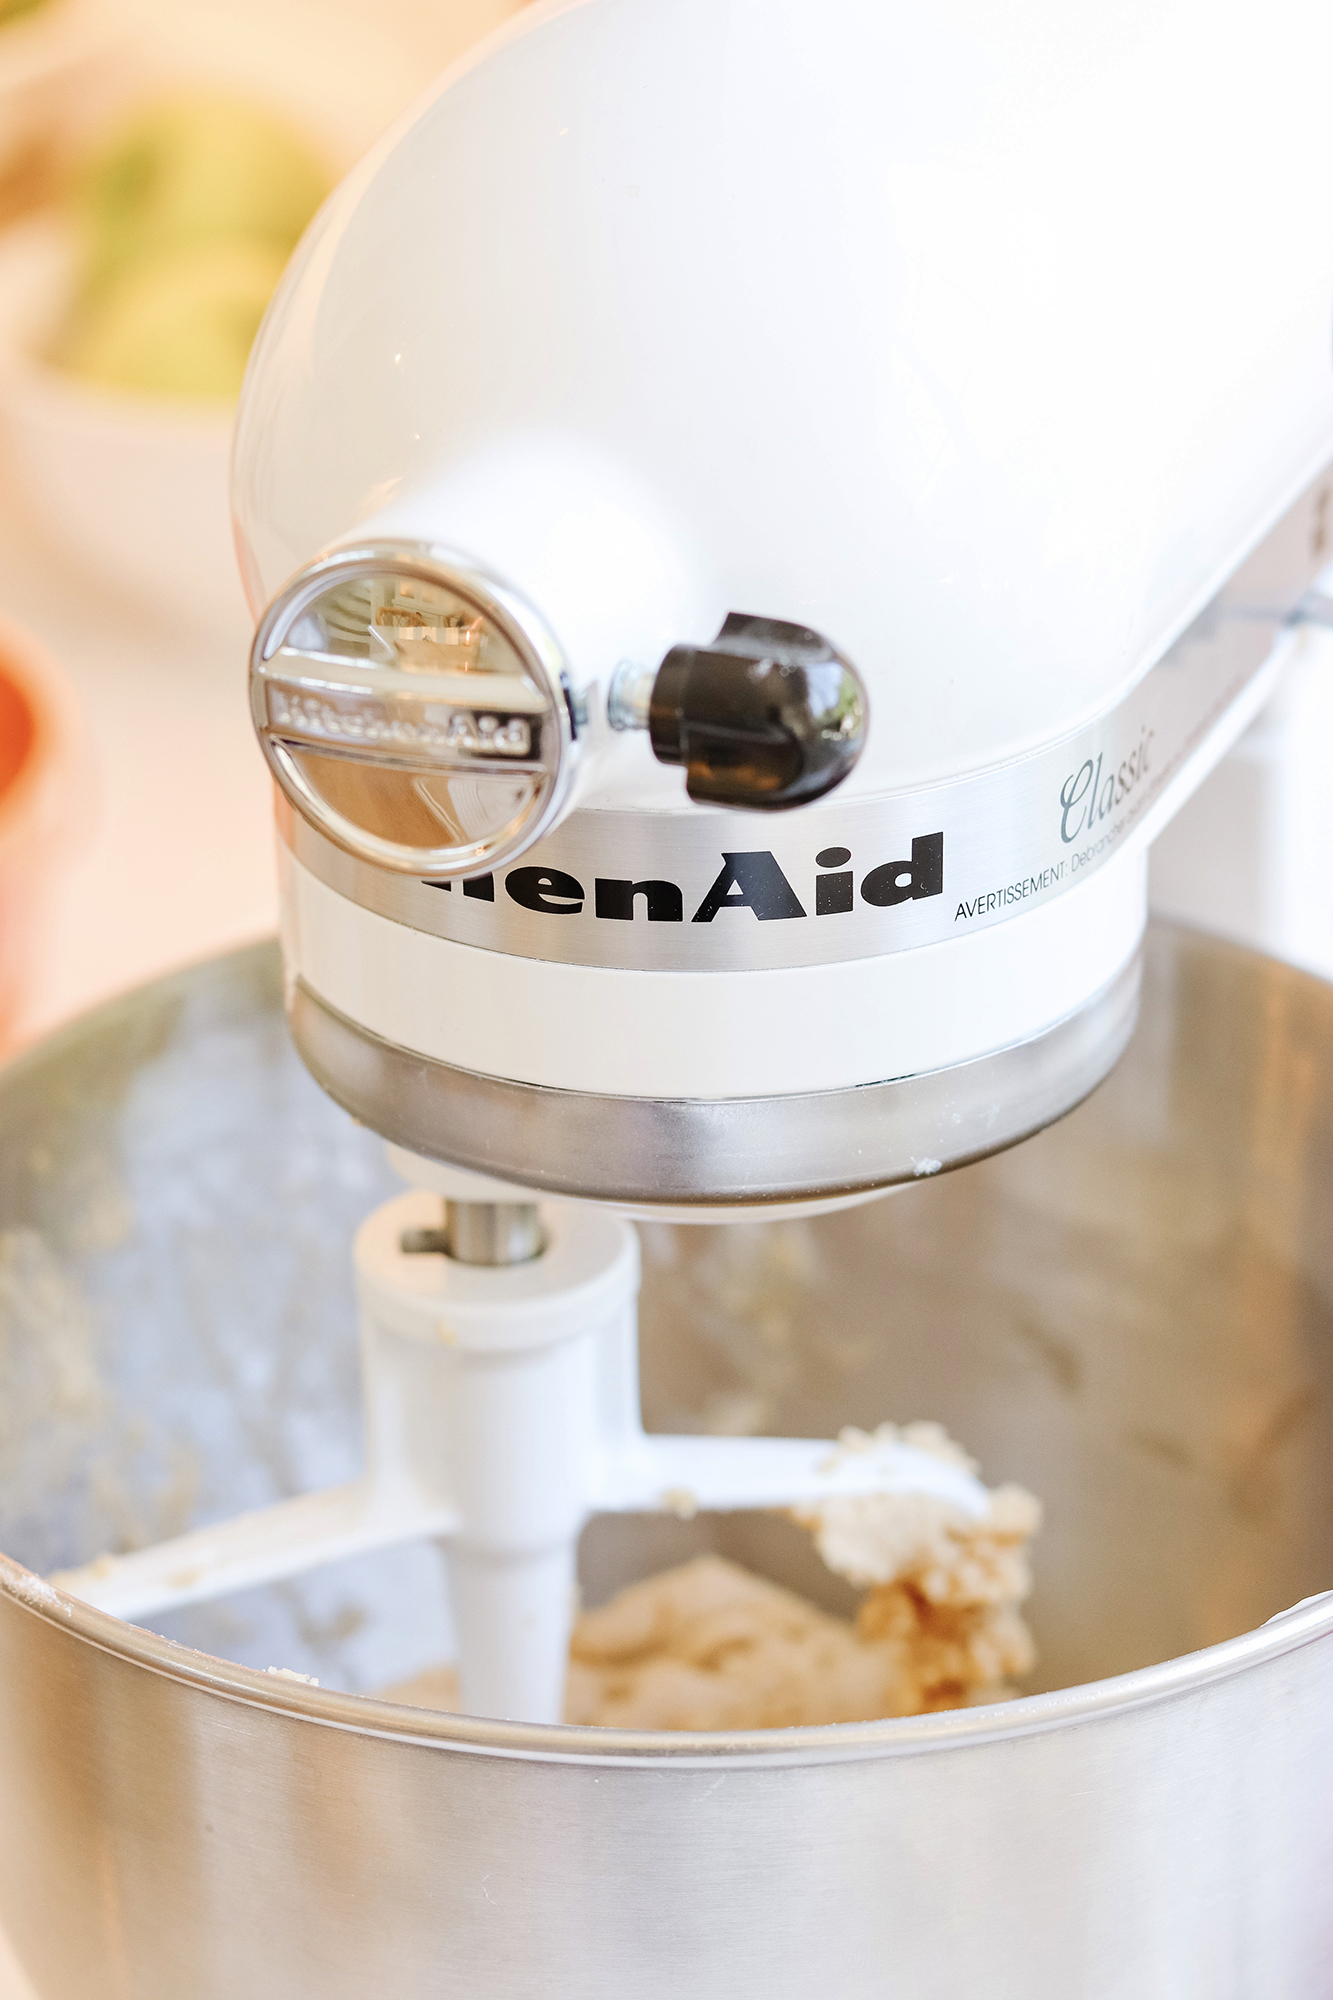 Jeff's Snickerdoodle Cookie Recipe & a huge KitchenAid Mixer sale that we love is happening right now! So many great items available for a low price.